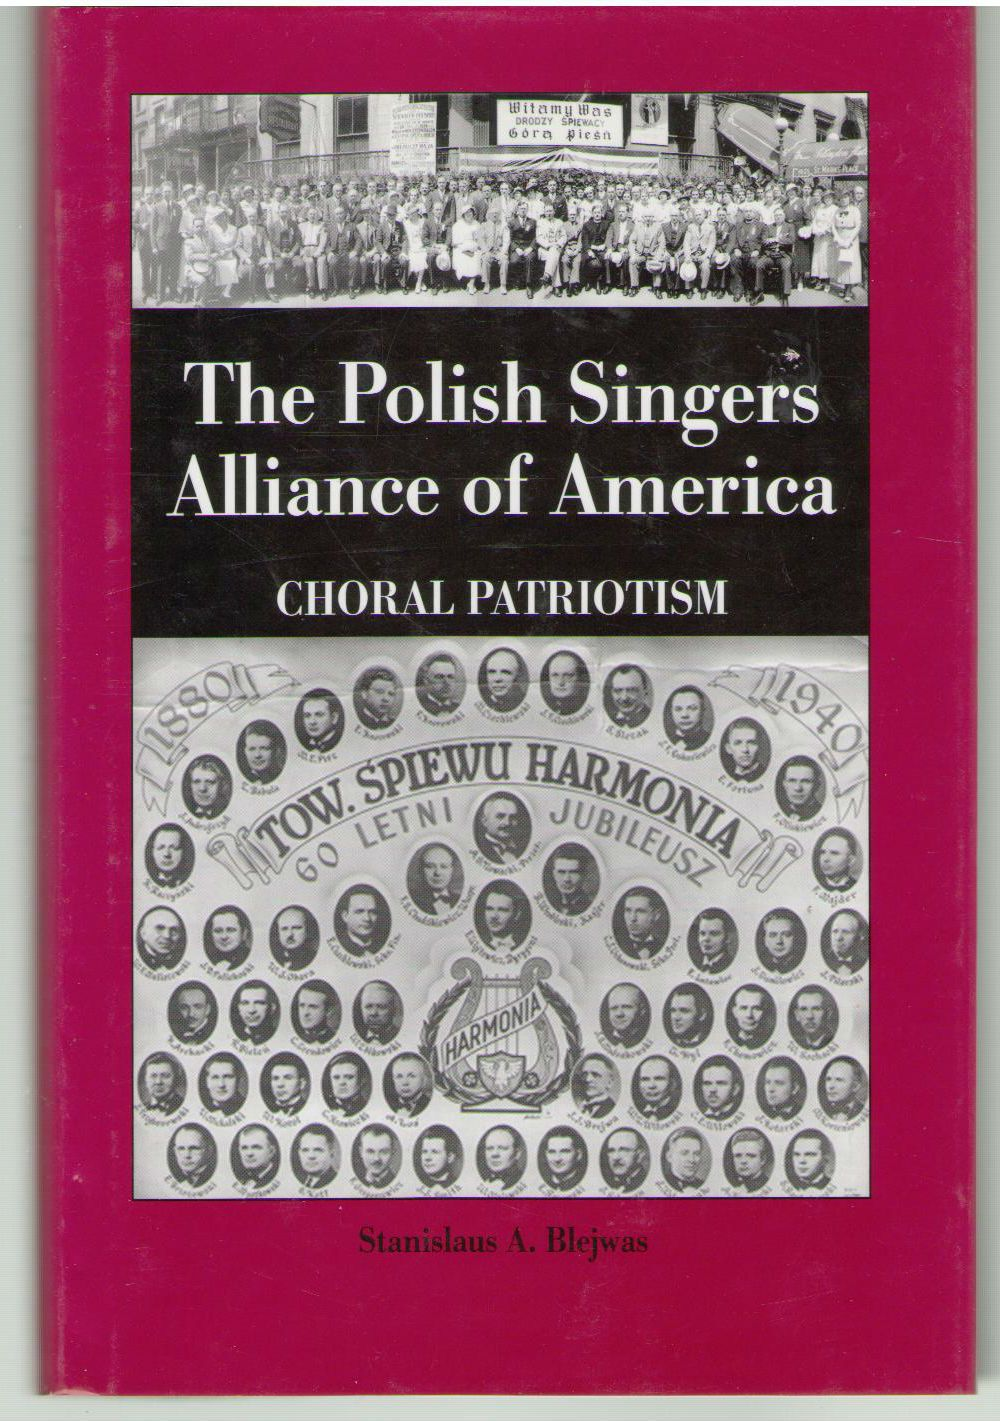 The Polish Singers Alliance of America 1888-1998: Choral Patriotism (Rochester Studies in East and Central Europe), Blejwas, Stanislaus A.